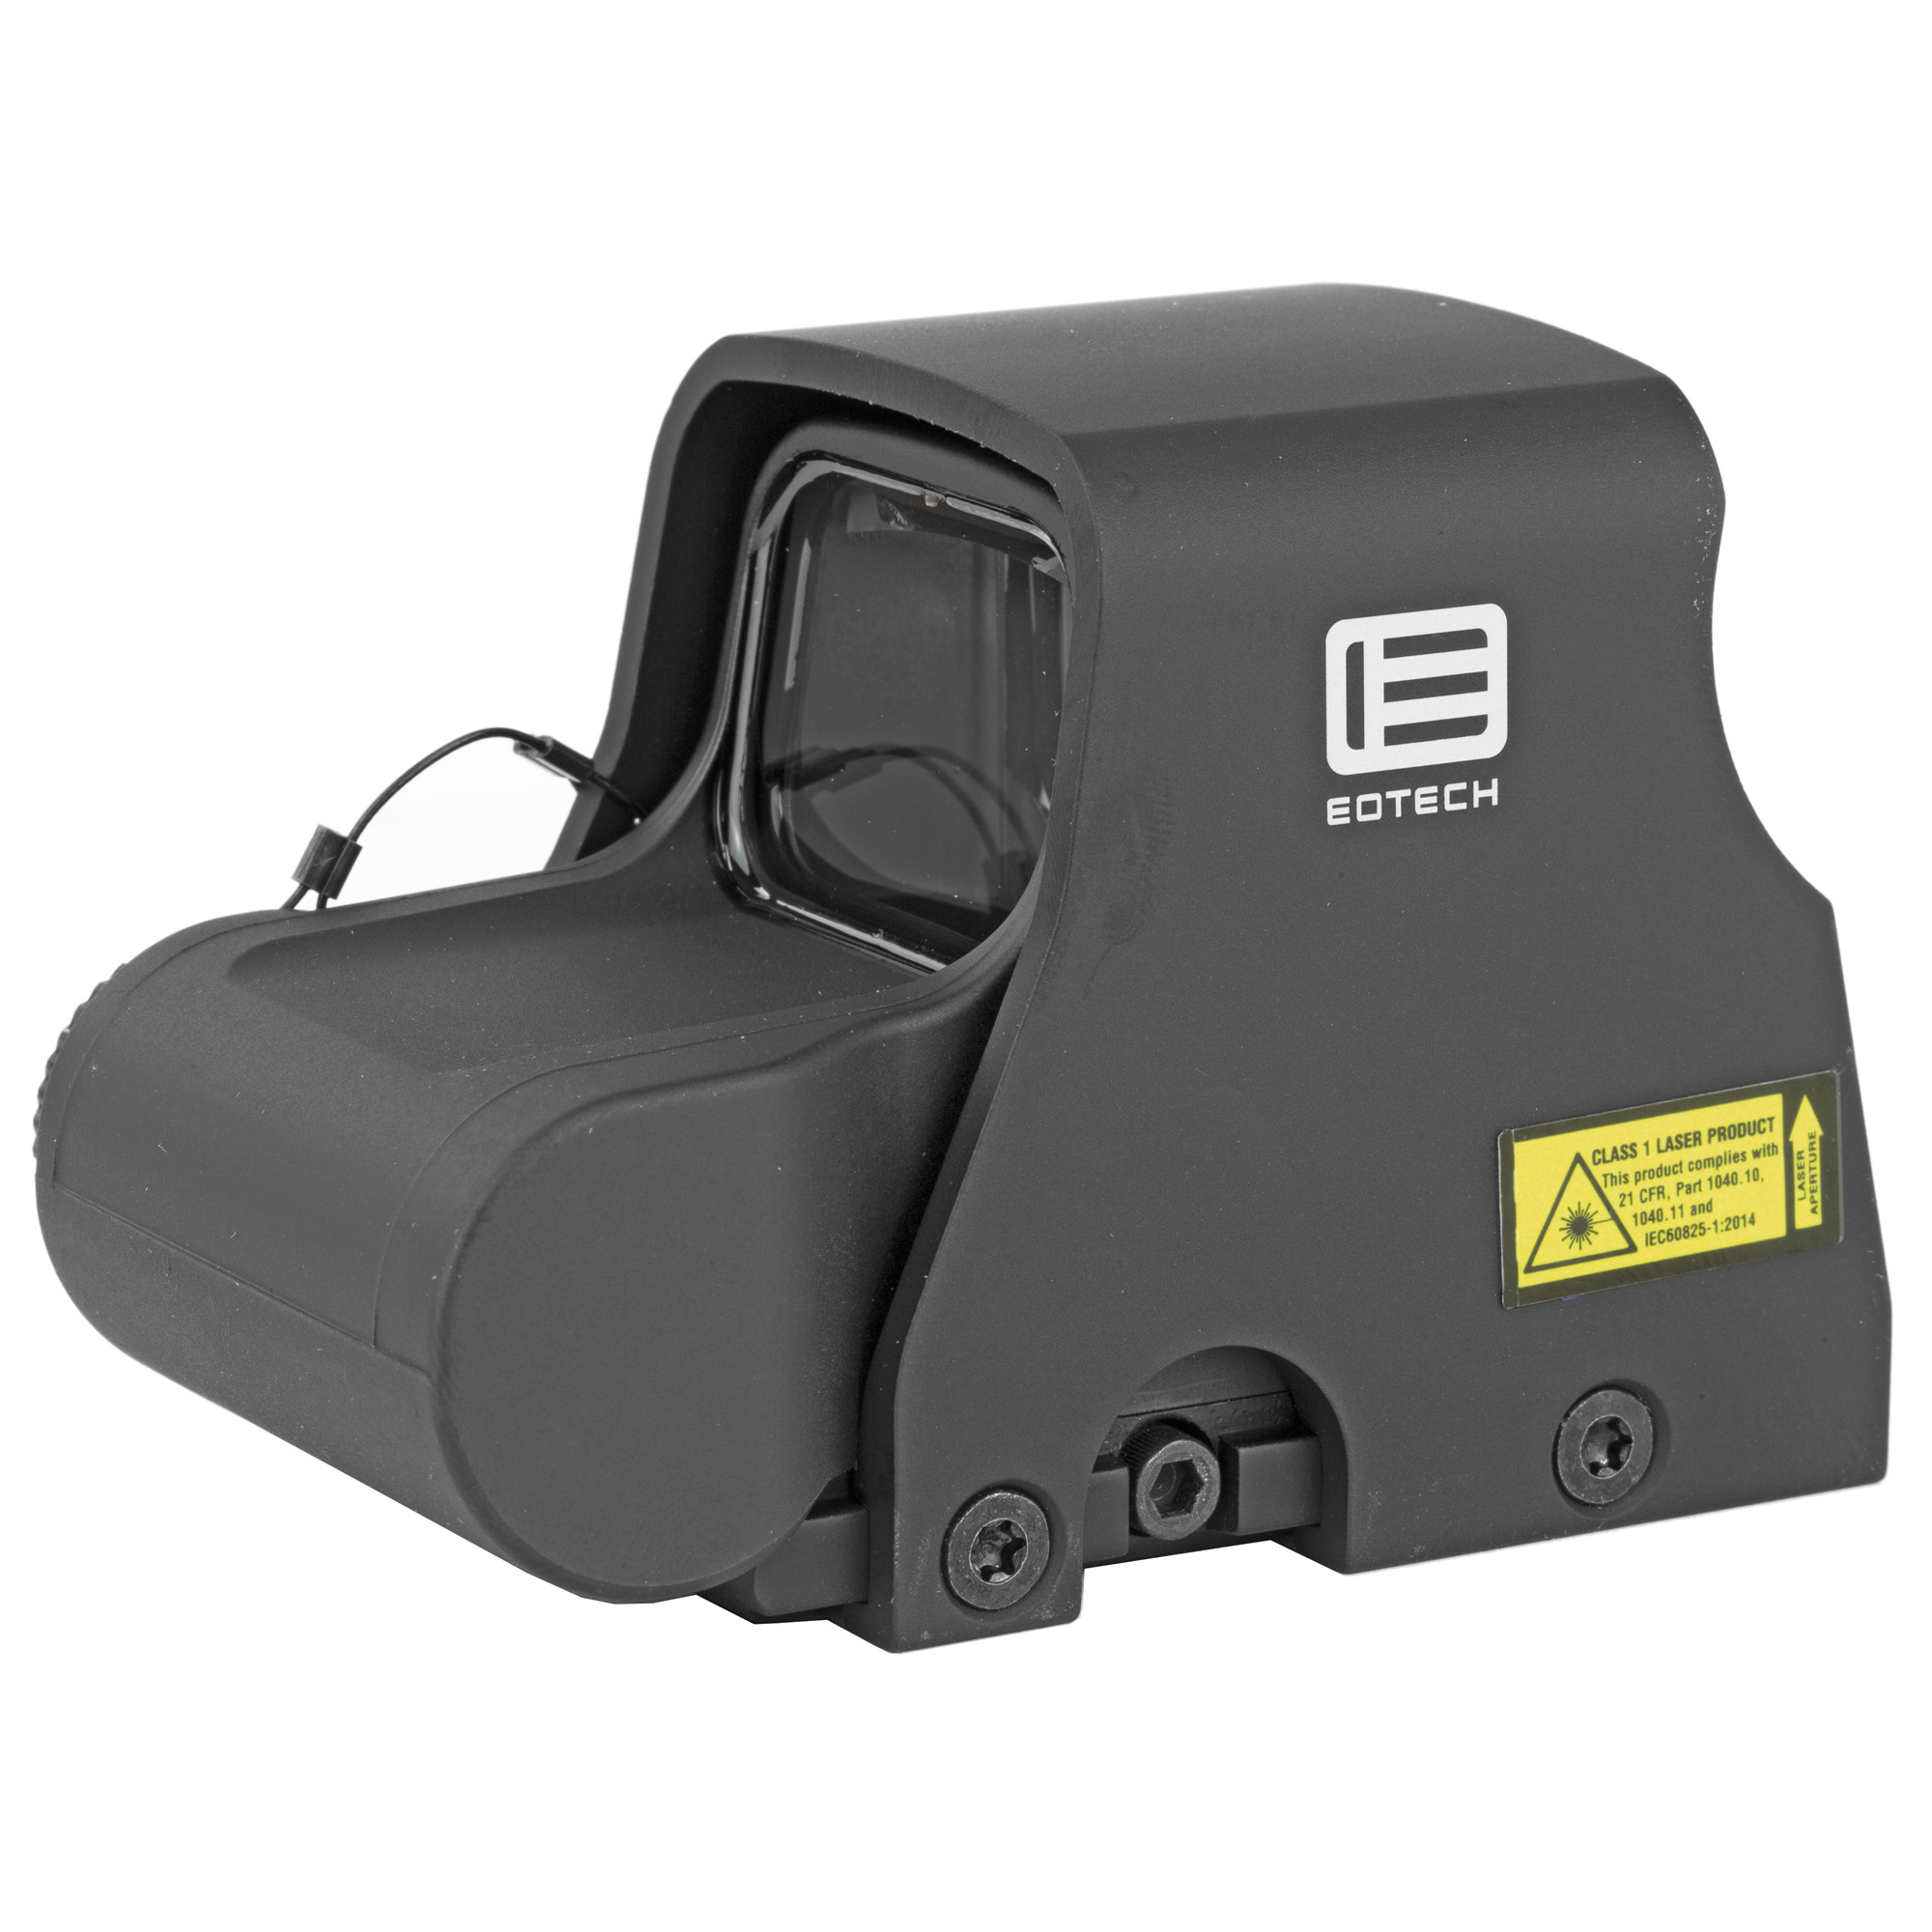 "The XPS2 is the shortest"" smallest and lightest EOTech model holographic weapon sight available without night vision. Its size and weight make it convenient for hunters and law enforcement officers to carry. It is also fast and runs on a single 123 battery. The compact"" single-lithium-battery configuration leaves more rail space than ever for rear iron sights or magnifiers."